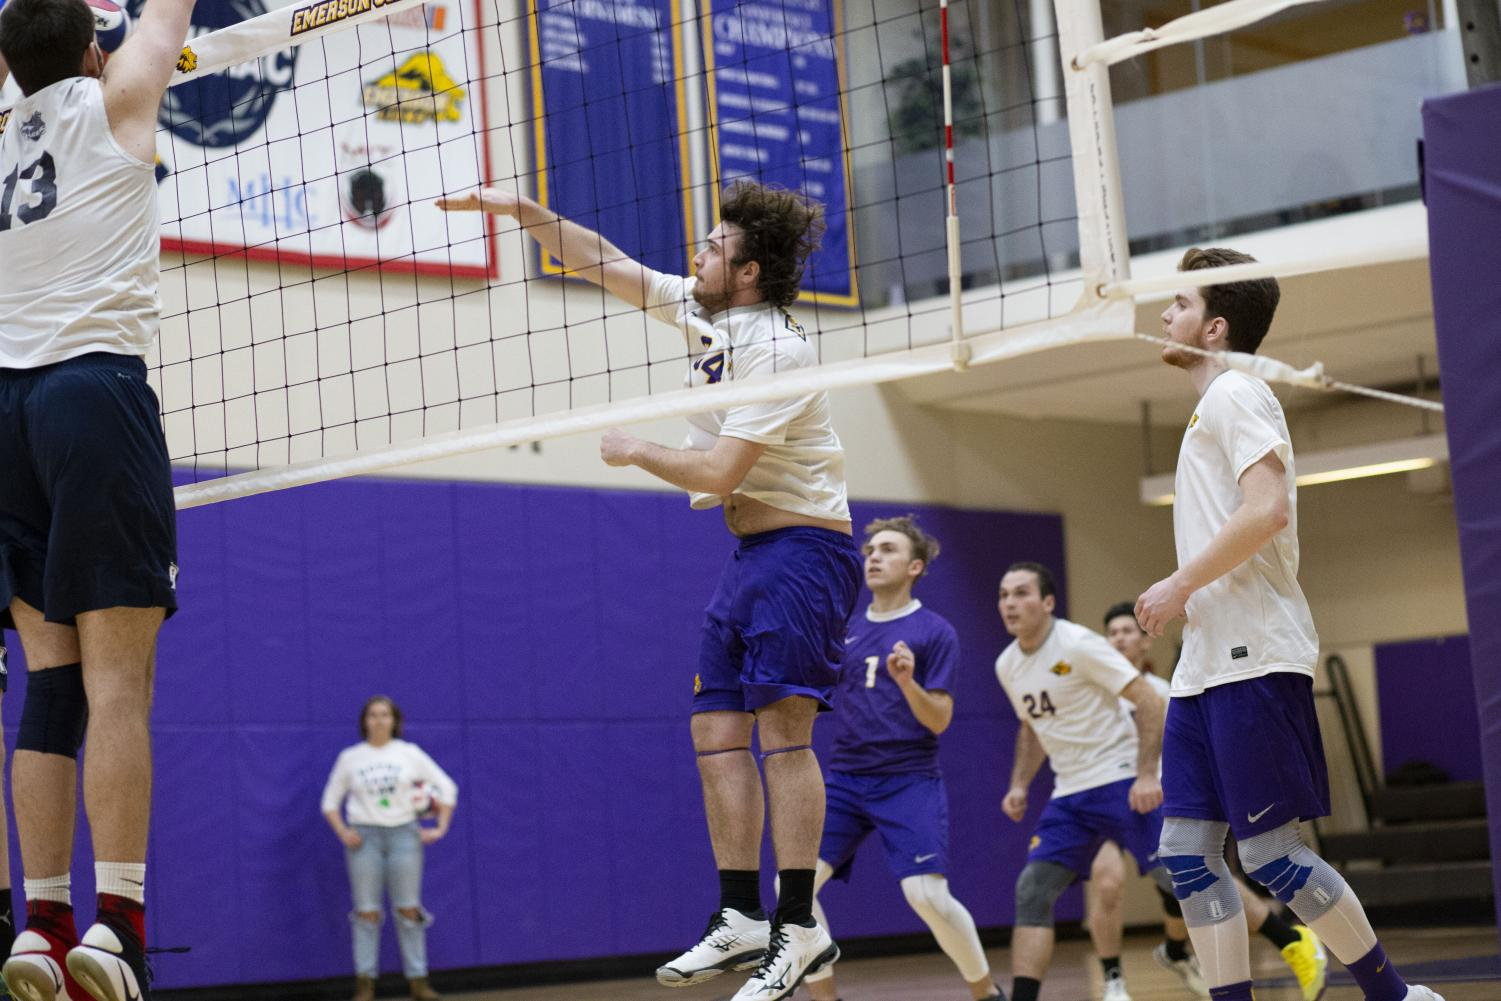 The men's volleyball team lost in the first round of the NEWMAC playoffs for the third consecutive year last season.